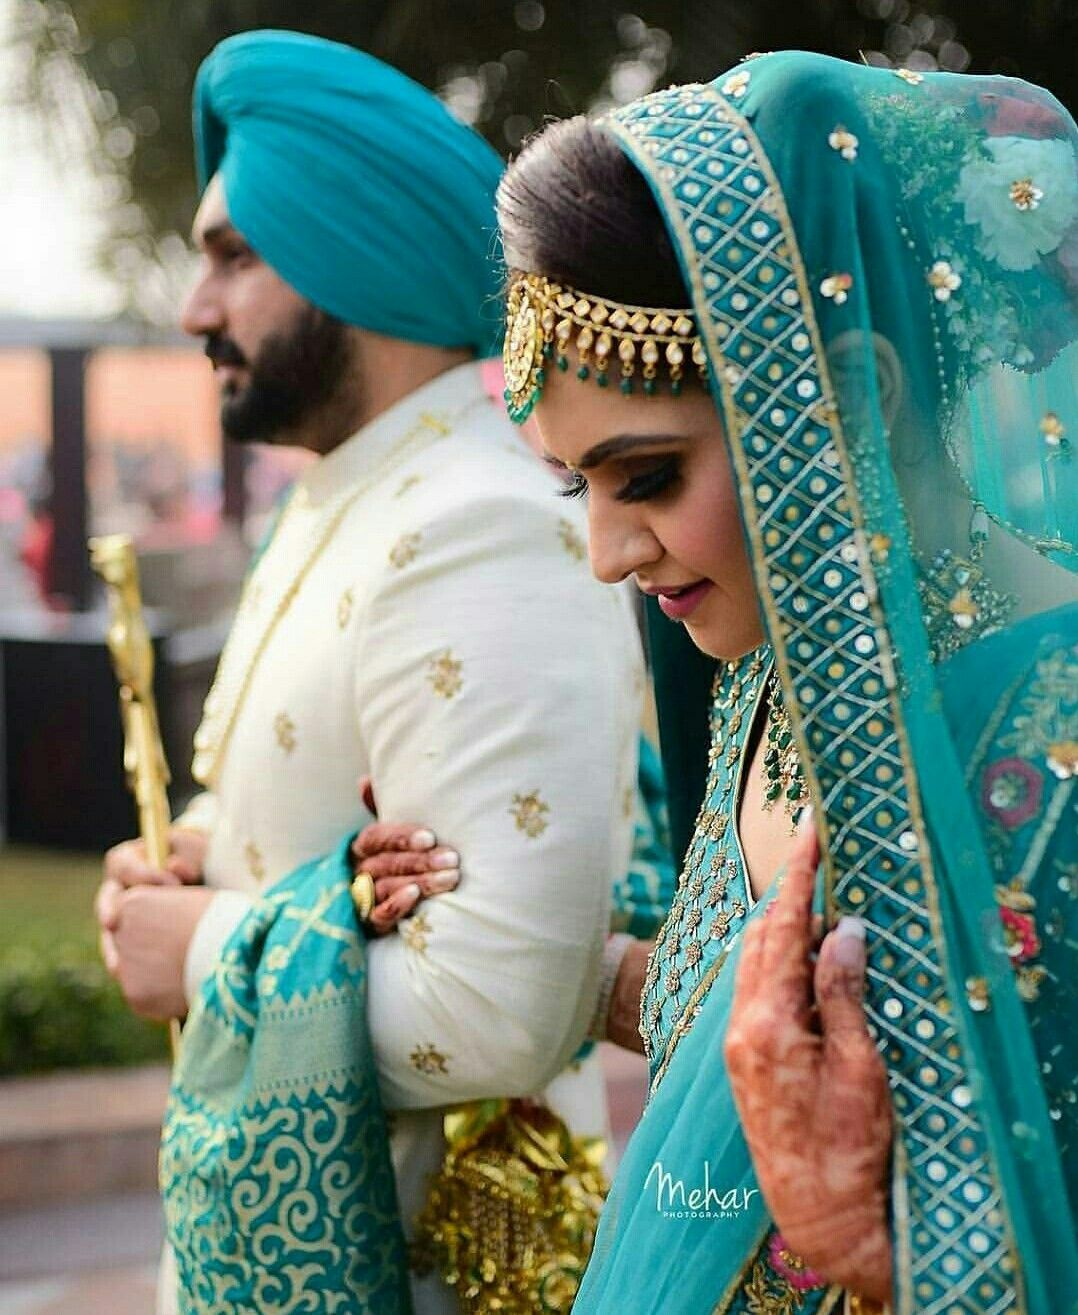 Pin By Tina Carter On Punjabi Groom Nd Bride In 2020 Couple Wedding Dress Indian Bridal Outfits Indian Wedding Outfits